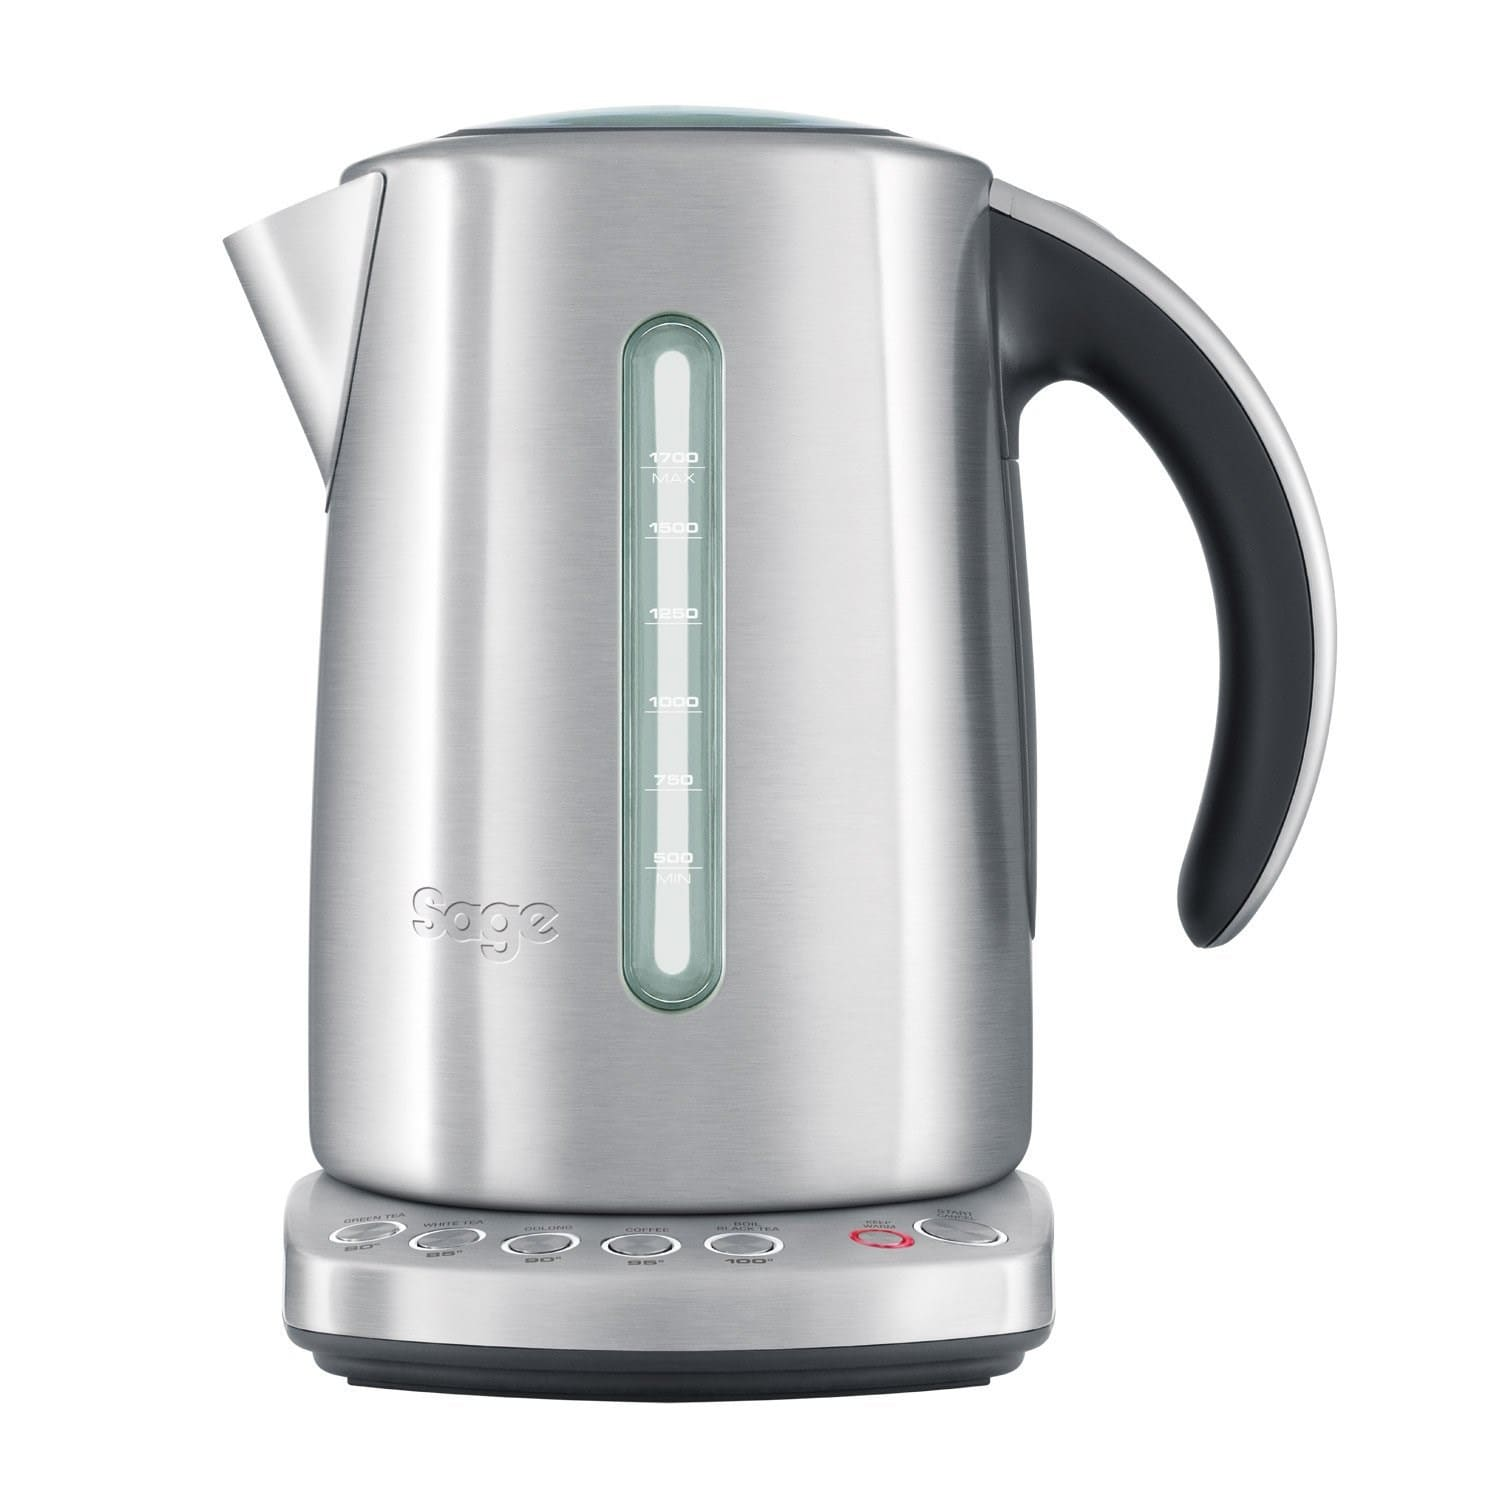 Xmas gift- Sage smart kettle